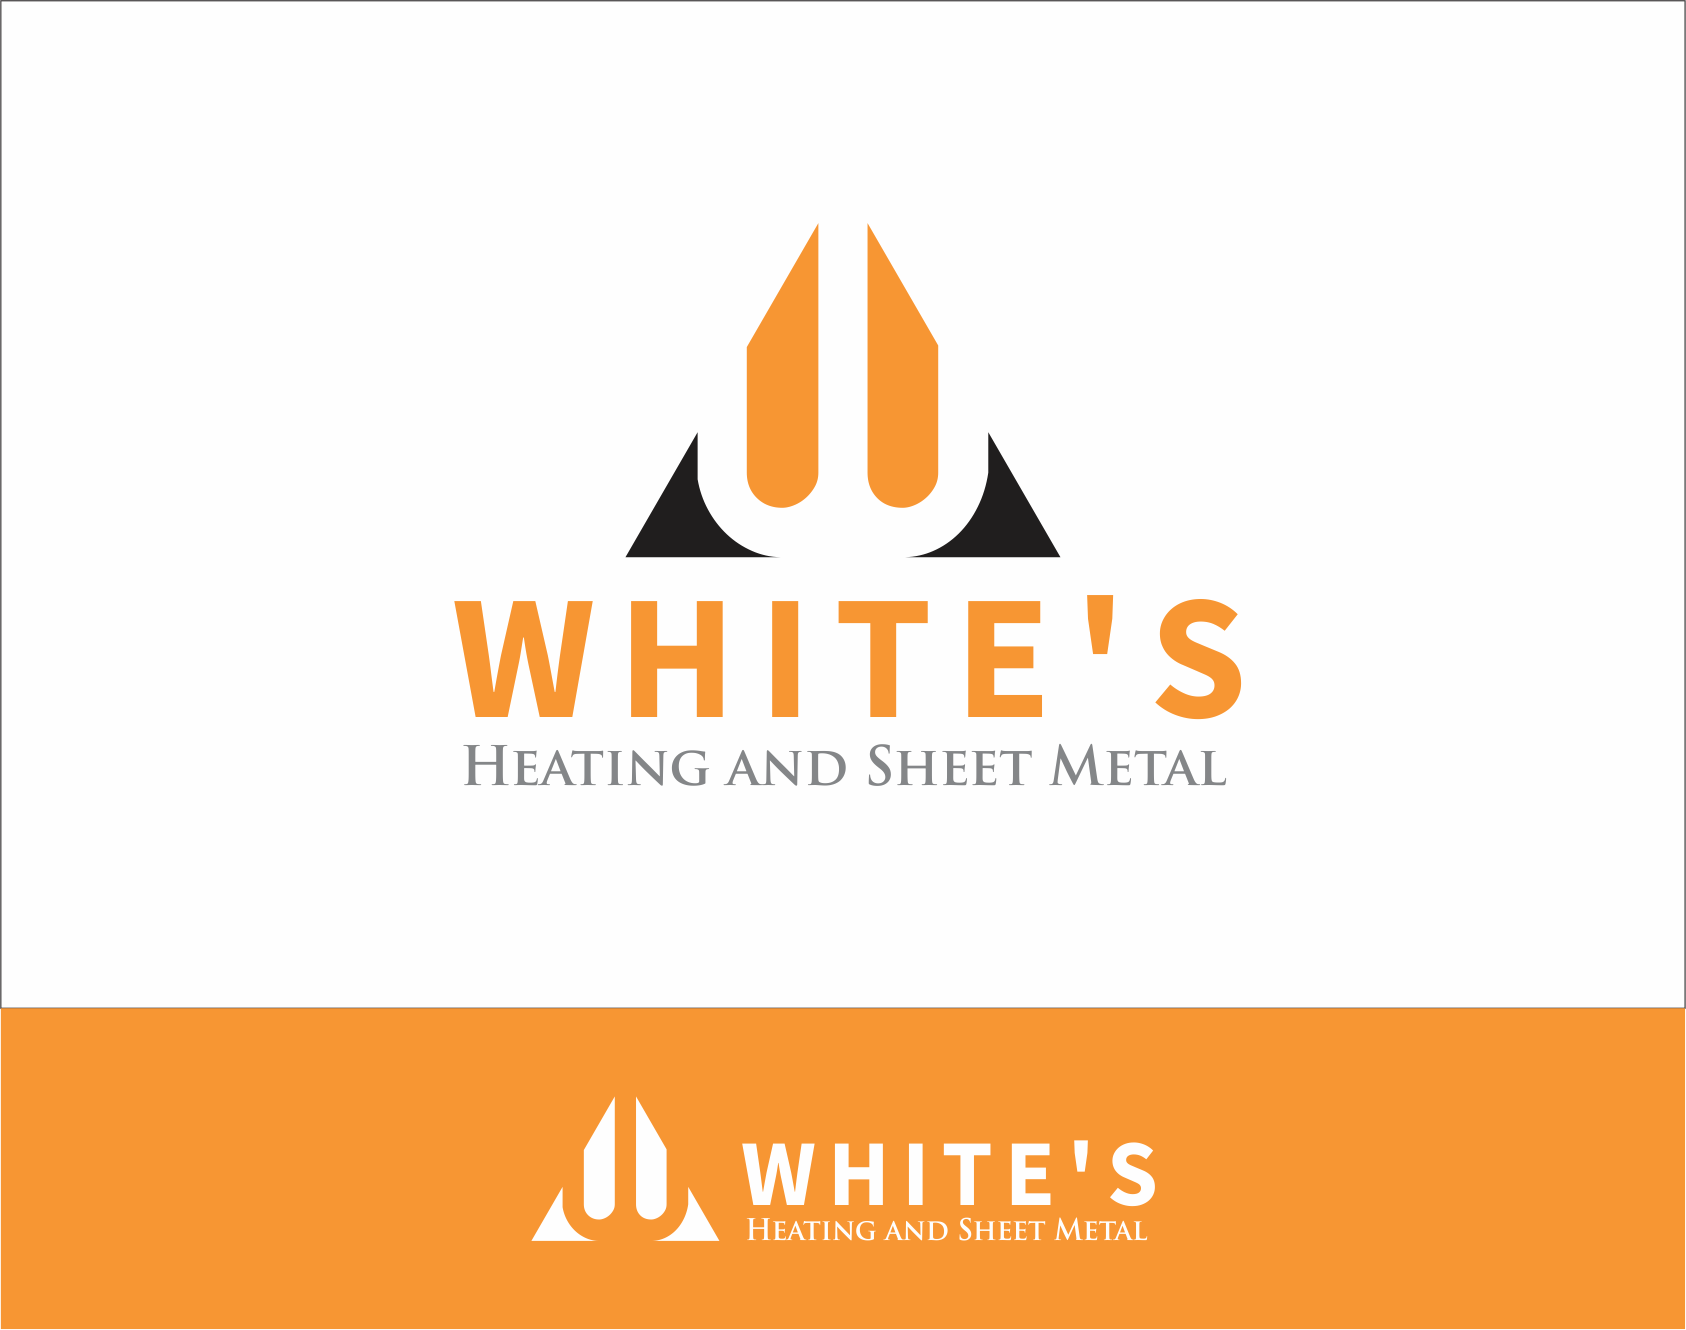 Logo Design by Armada Jamaluddin - Entry No. 164 in the Logo Design Contest Imaginative Logo Design for White's Heating and Sheet Metal.